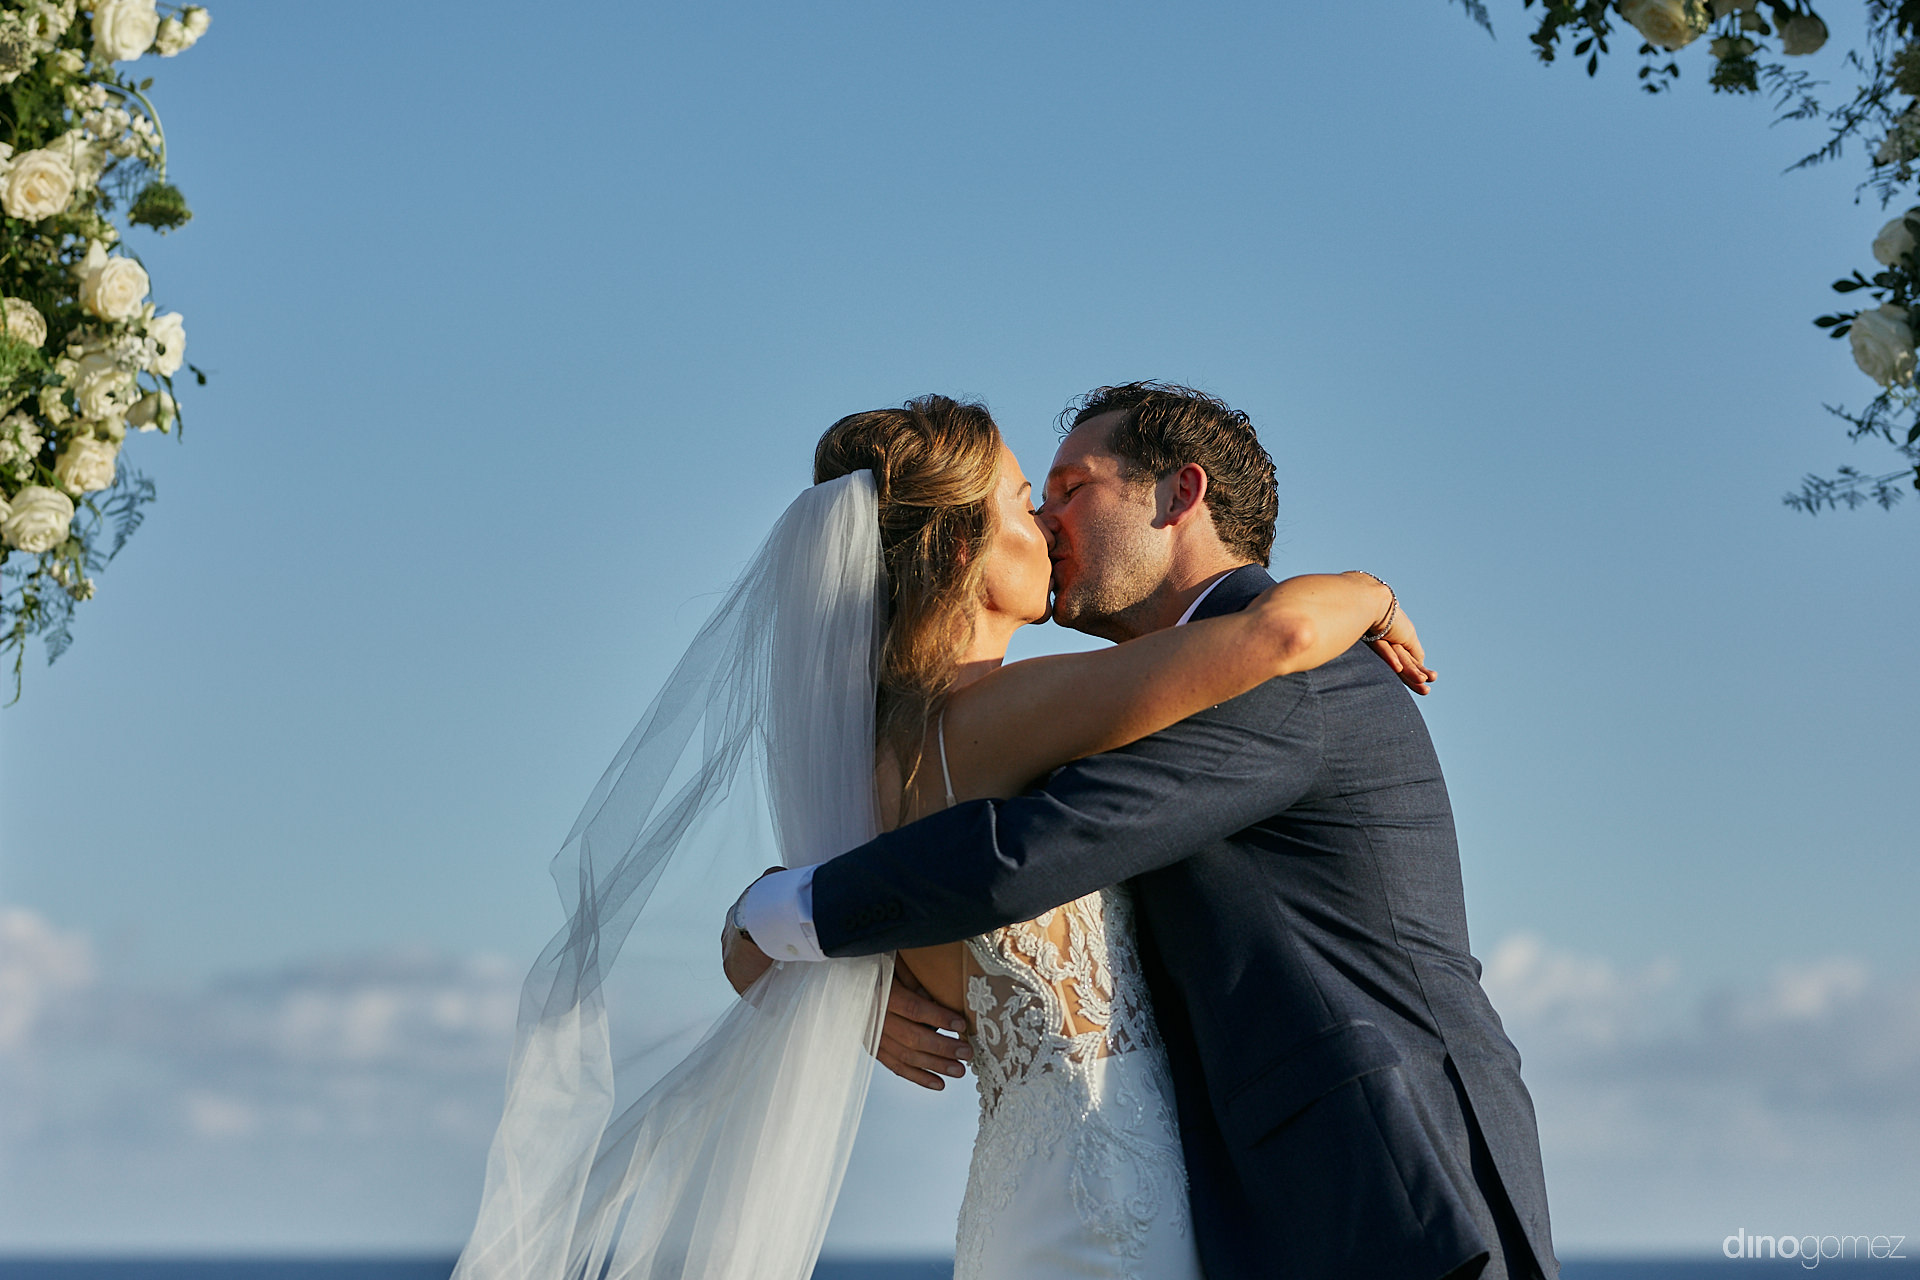 Cabo San Lucas Wedding Planners - Luxury Wedding Photographer In Cabo Dino Gomez - C&T